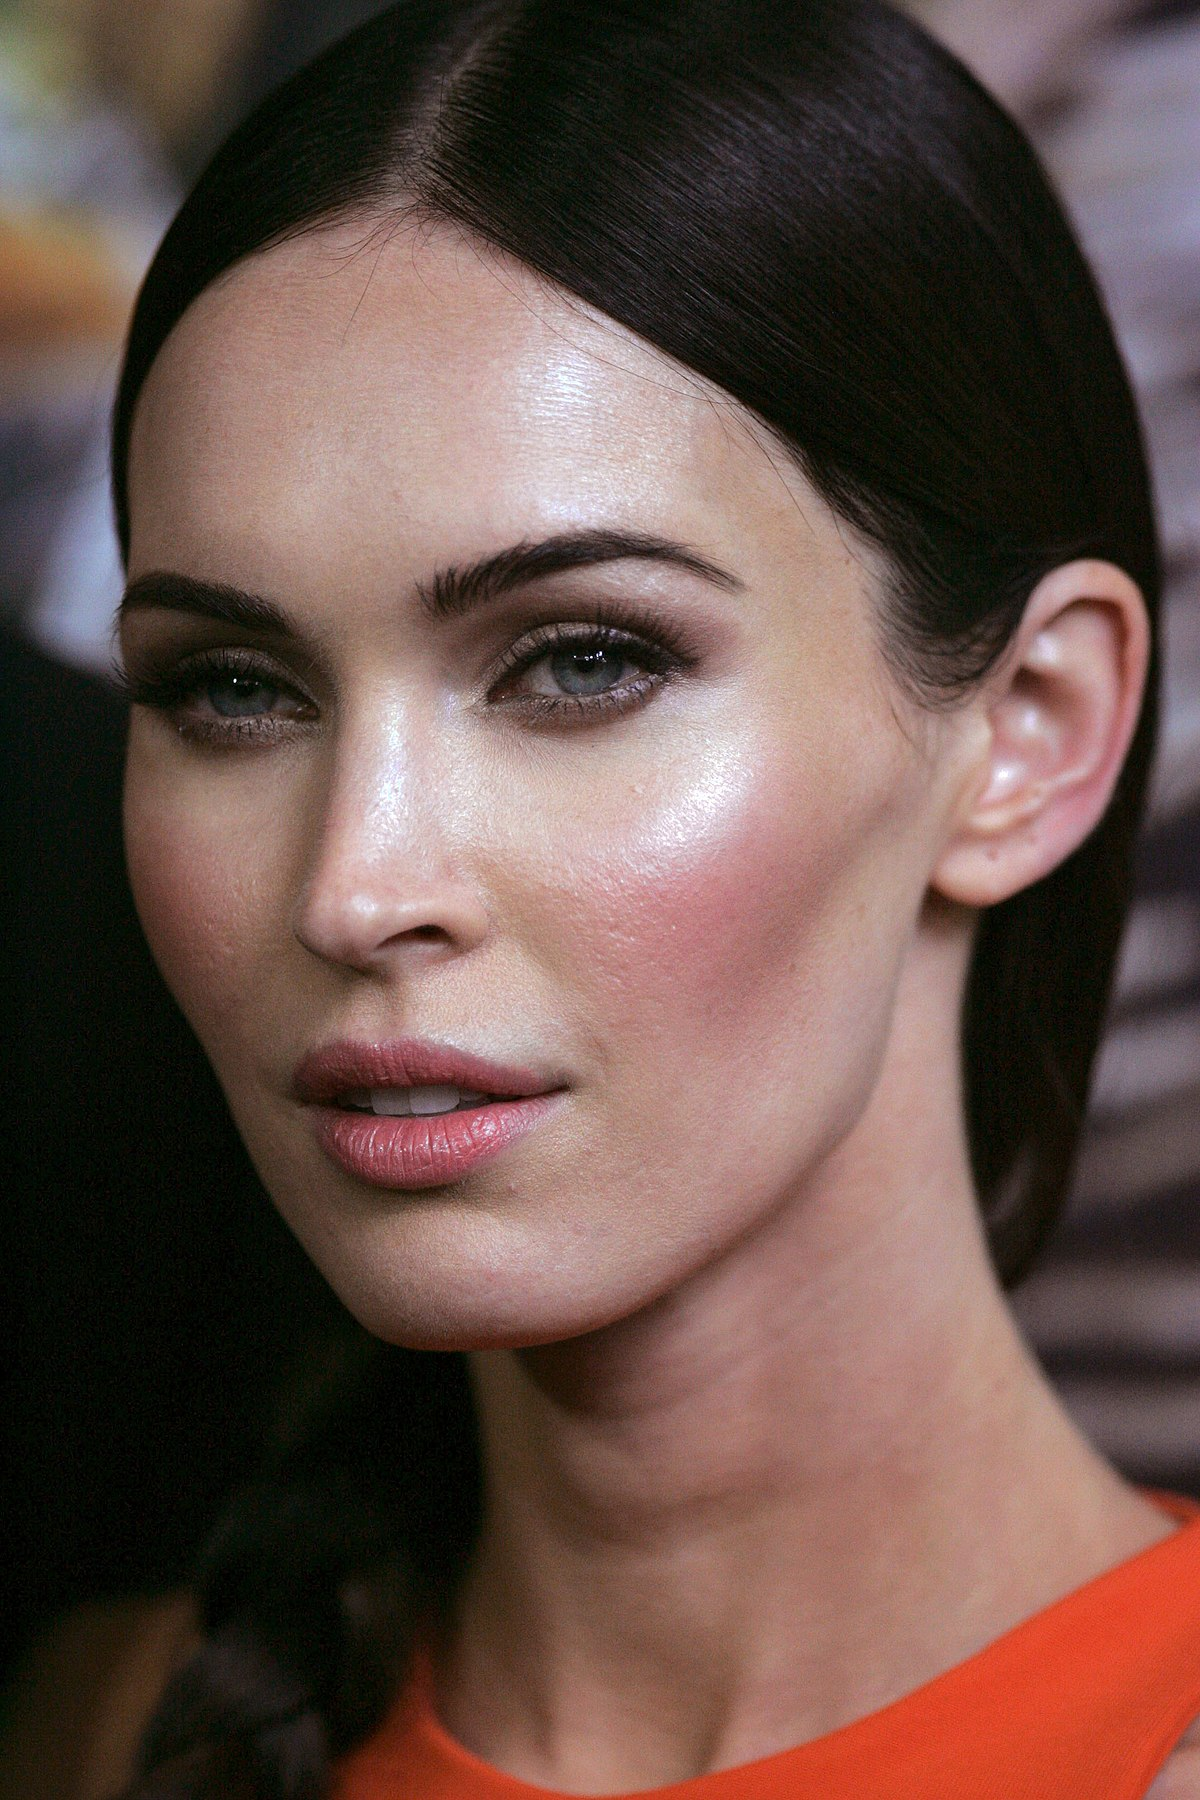 Megan Fox - Wikipedia Megan Fox